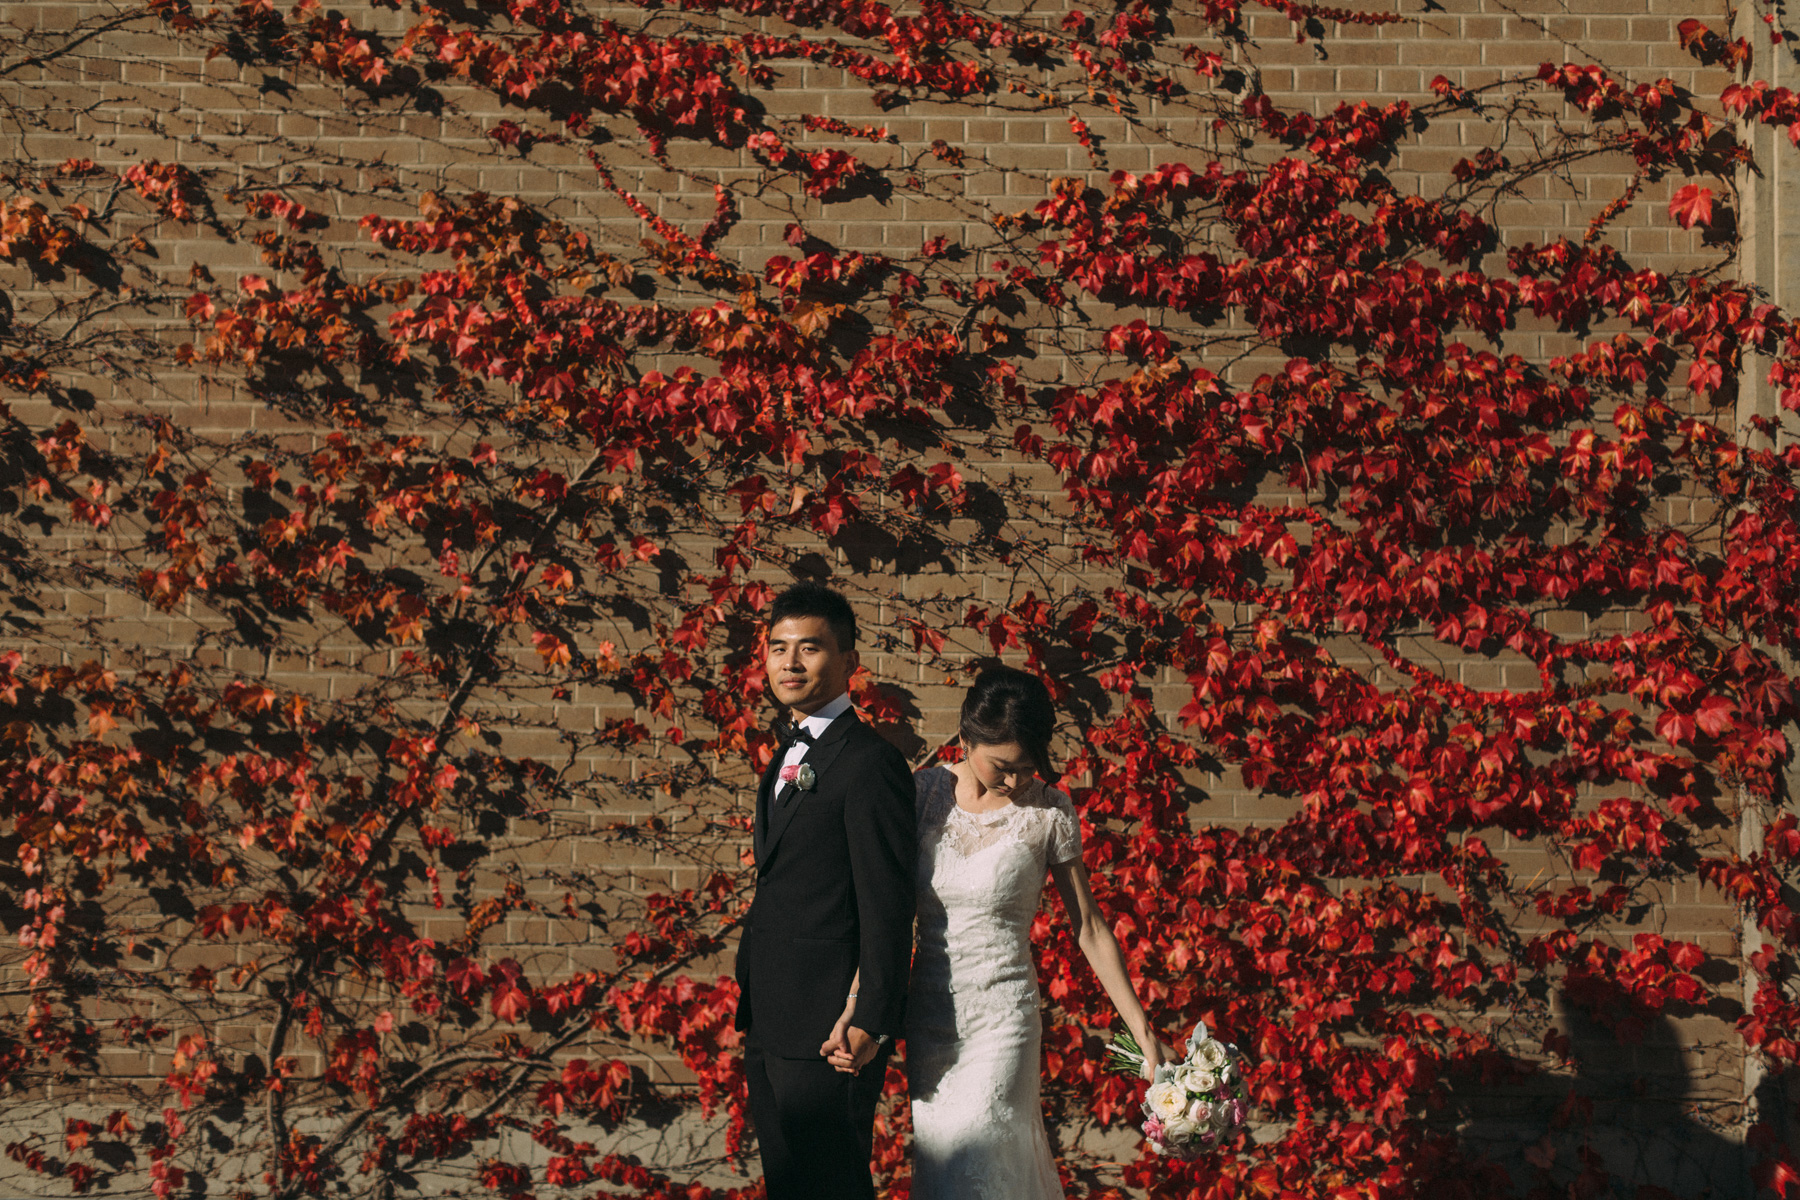 The-Faculty-Club-University-of-Toronto-wedding-by-Sam-Wong-of-Visual-Cravings_42.jpg